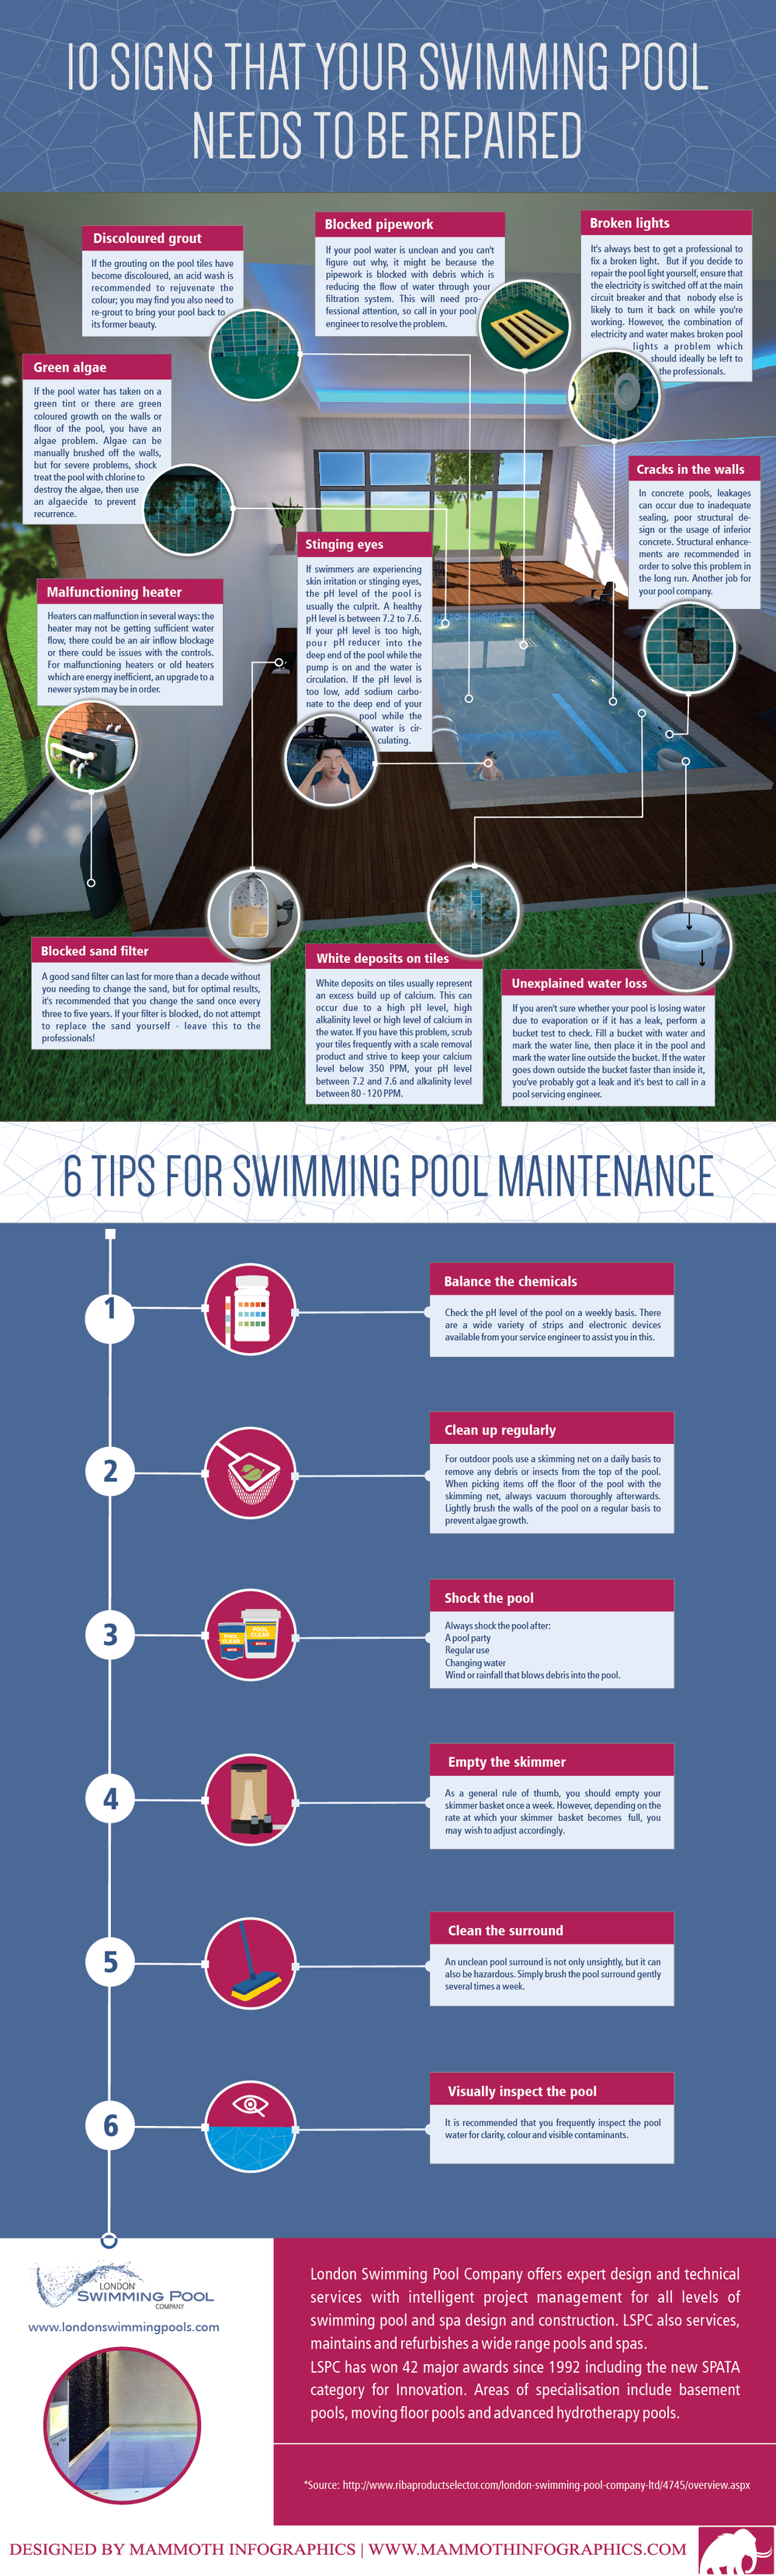 10-signs-that-your-swimming-pool-needs-to-be-repaired.png